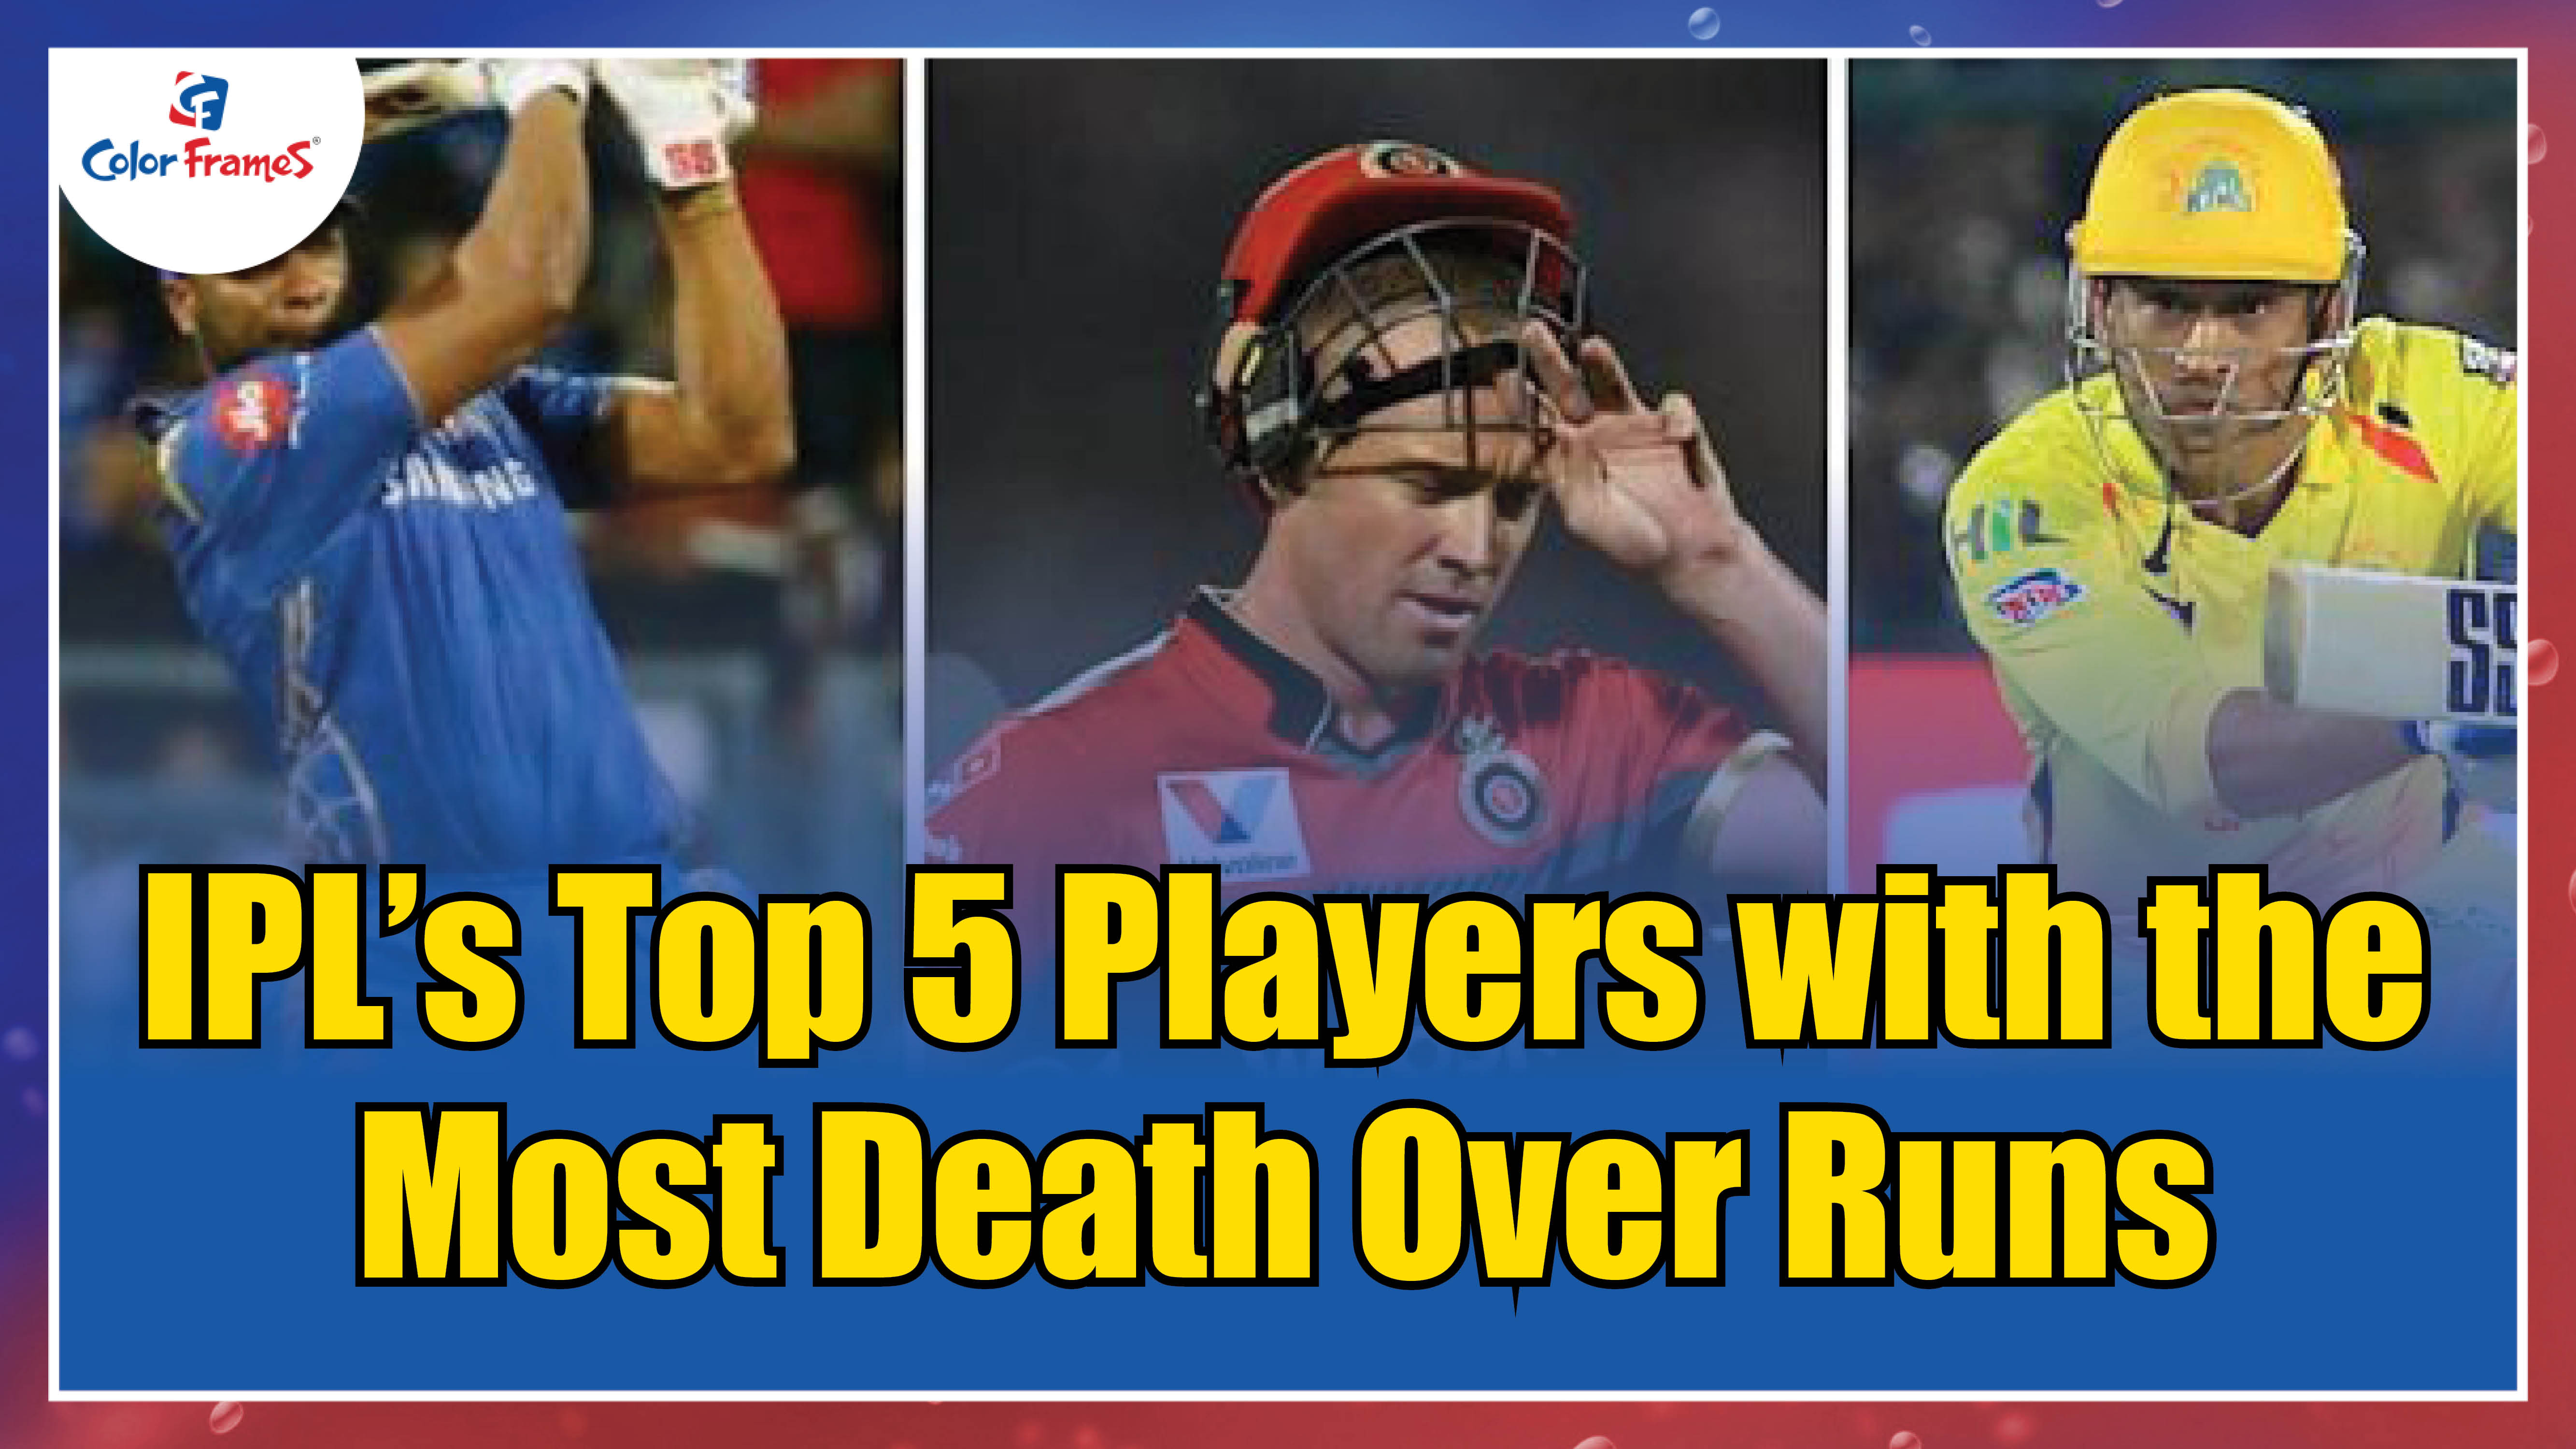 IPL's Top 5 Players with the Most Death Over Runs